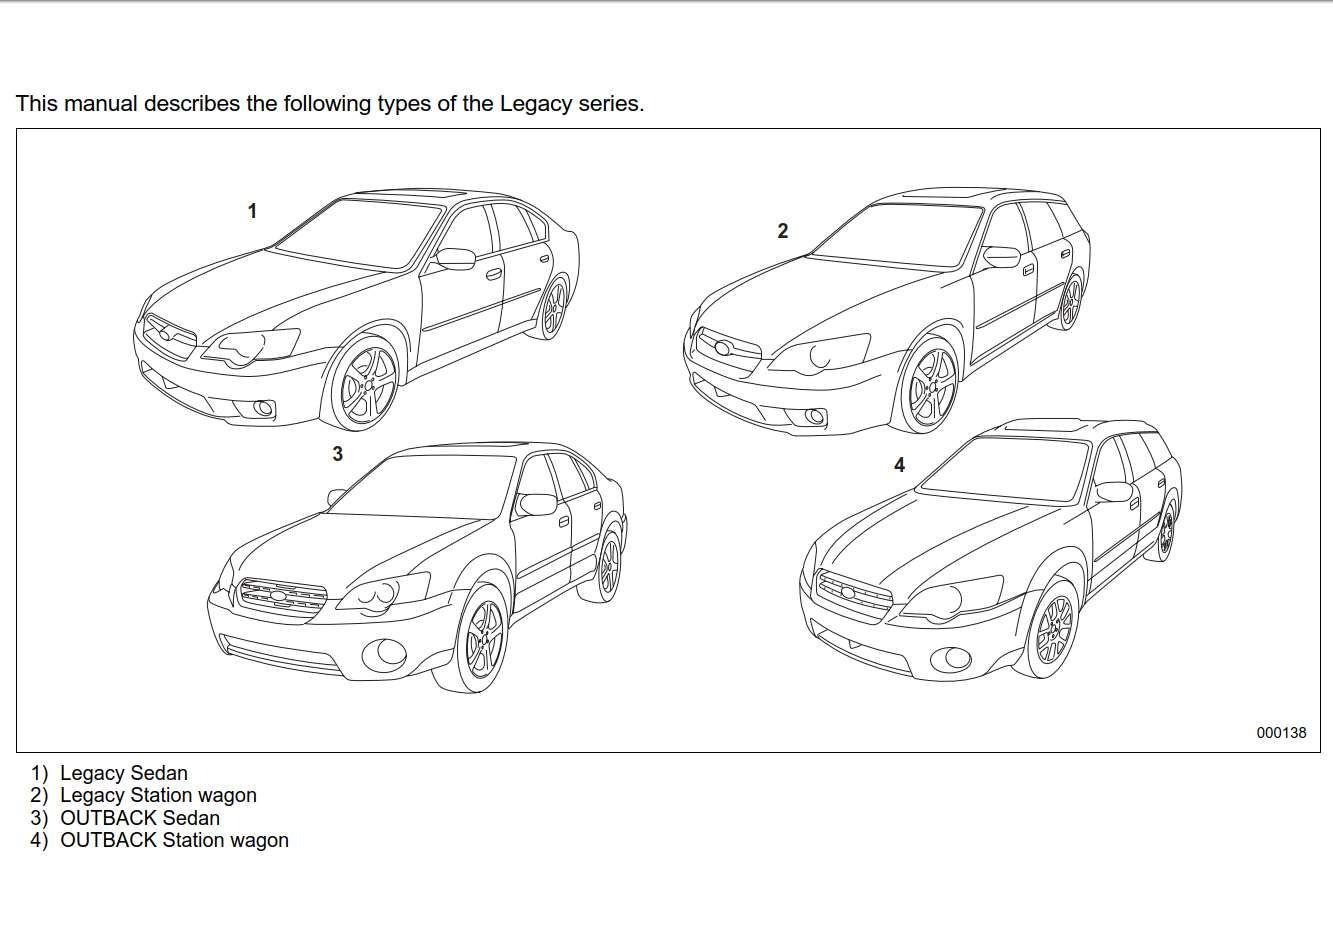 Subaru Legacy 2006 Owner's Manual has been published on